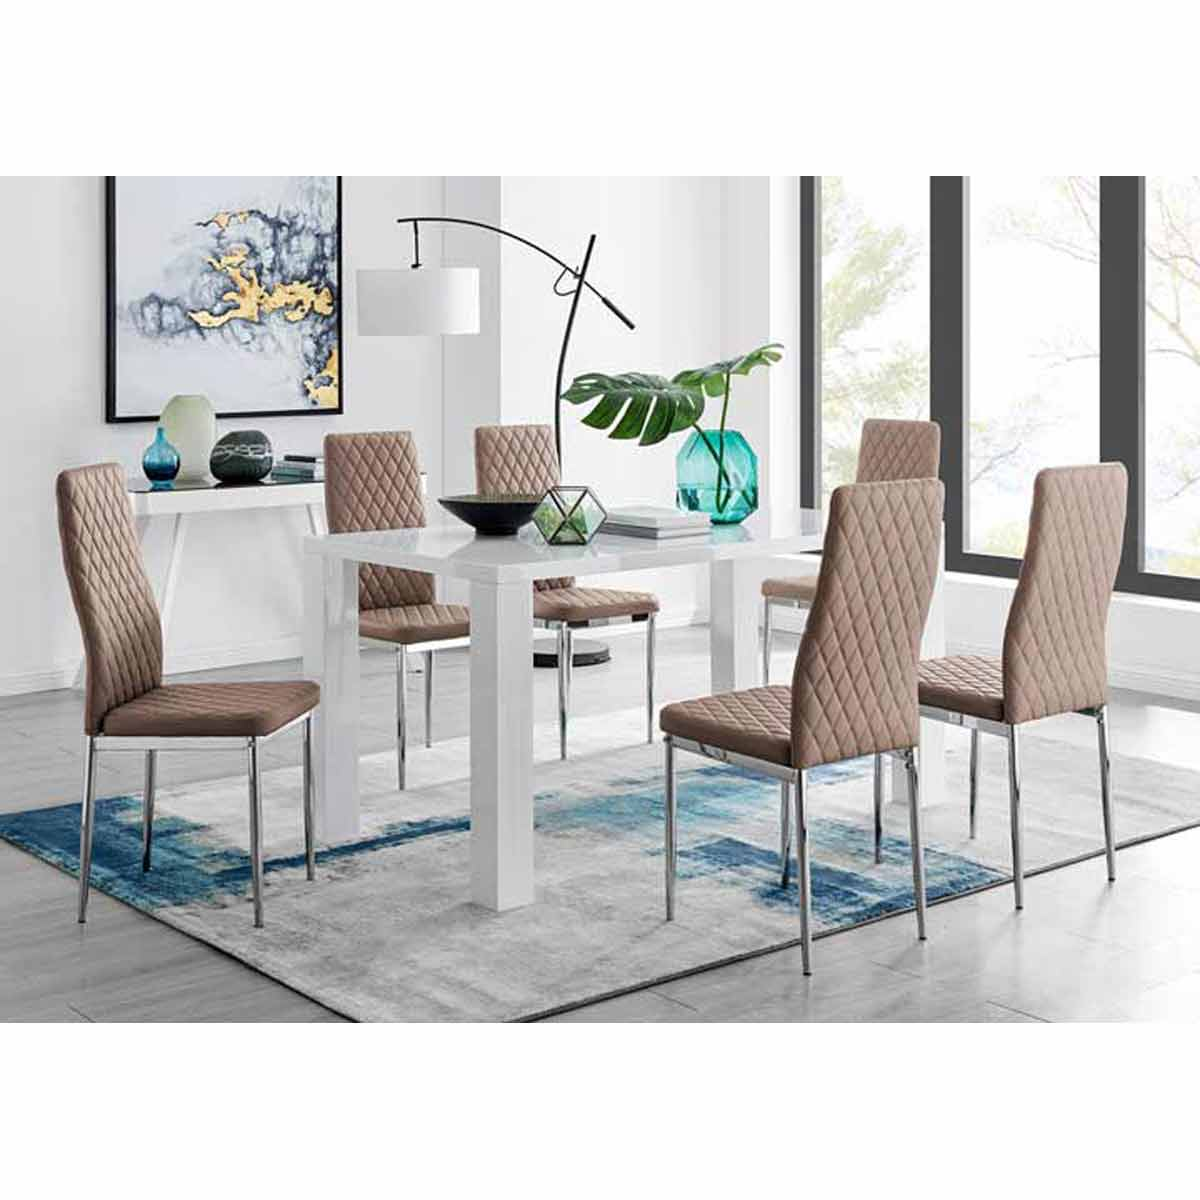 Furniture Box Pivero White High Gloss Dining Table And 6 Cappuccino Grey Milan Chairs Set